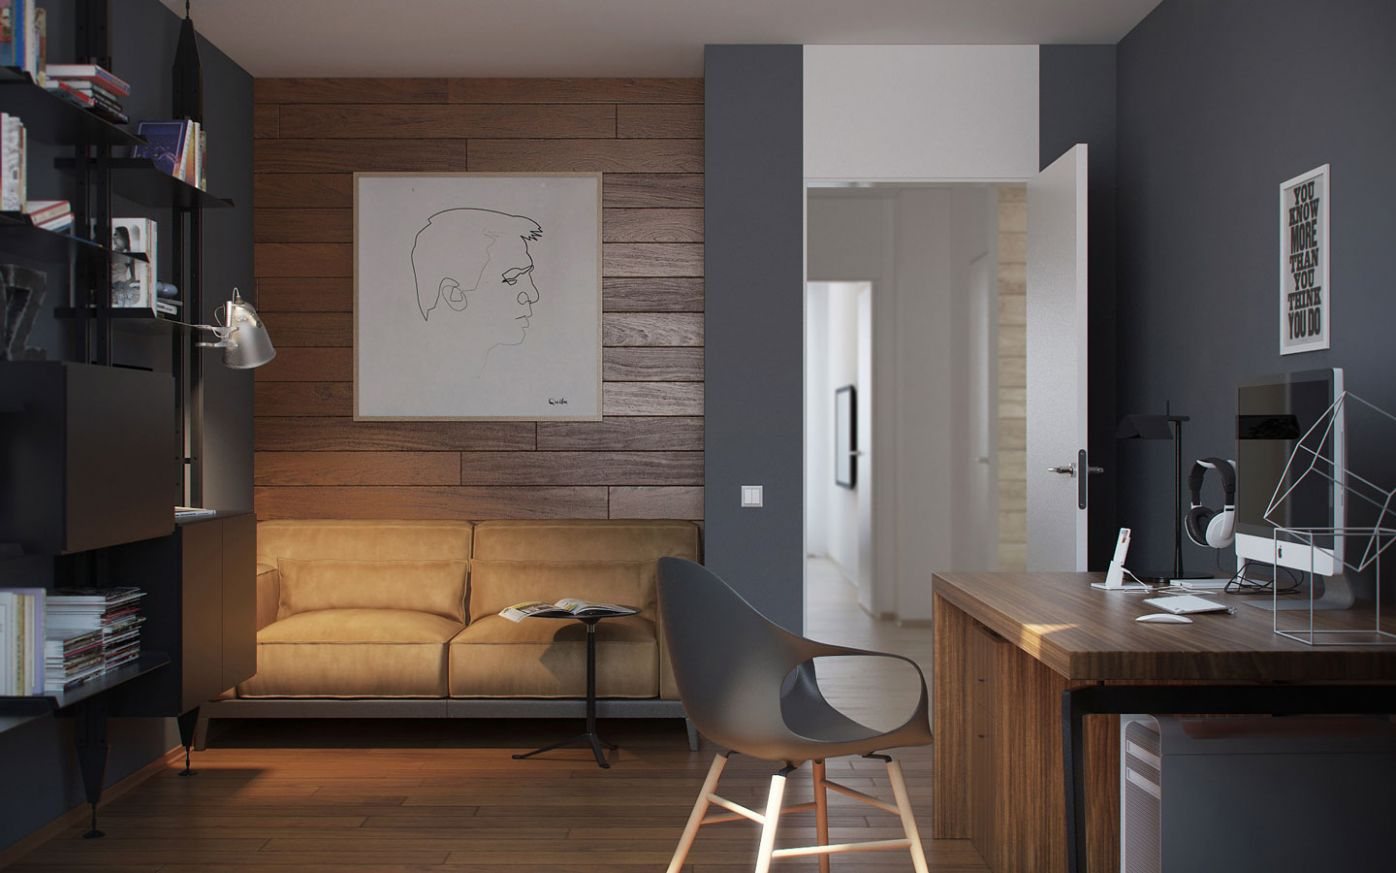 8 Ideas For A One Bedroom Apartment With Study (Includes Floor Plans) - apartment office design